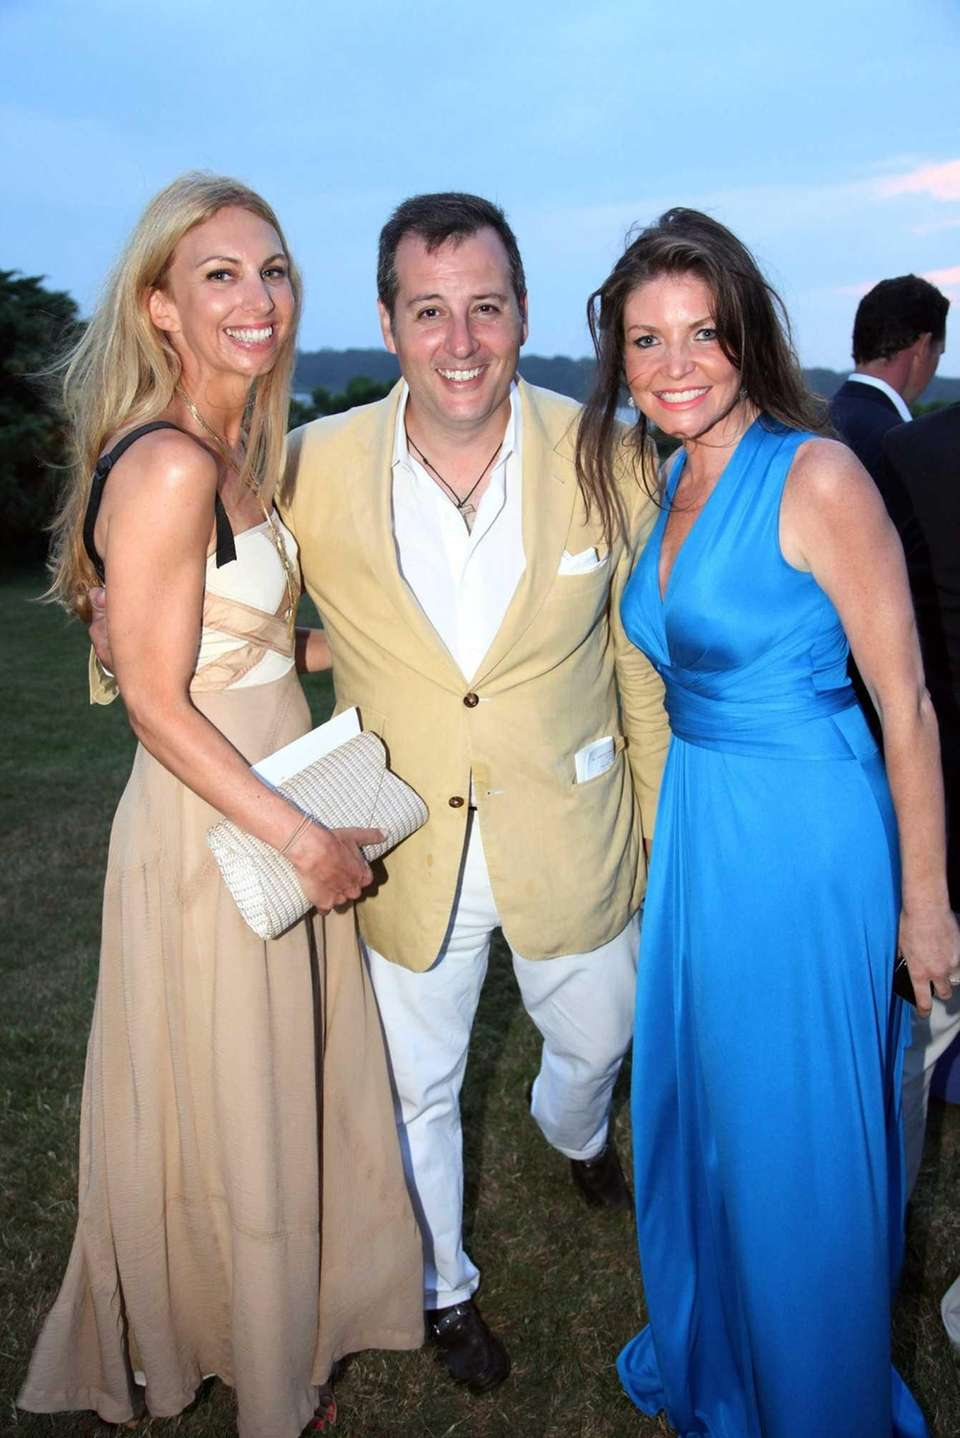 From left, Tara Mulroony, Steven Knobel and Nicole